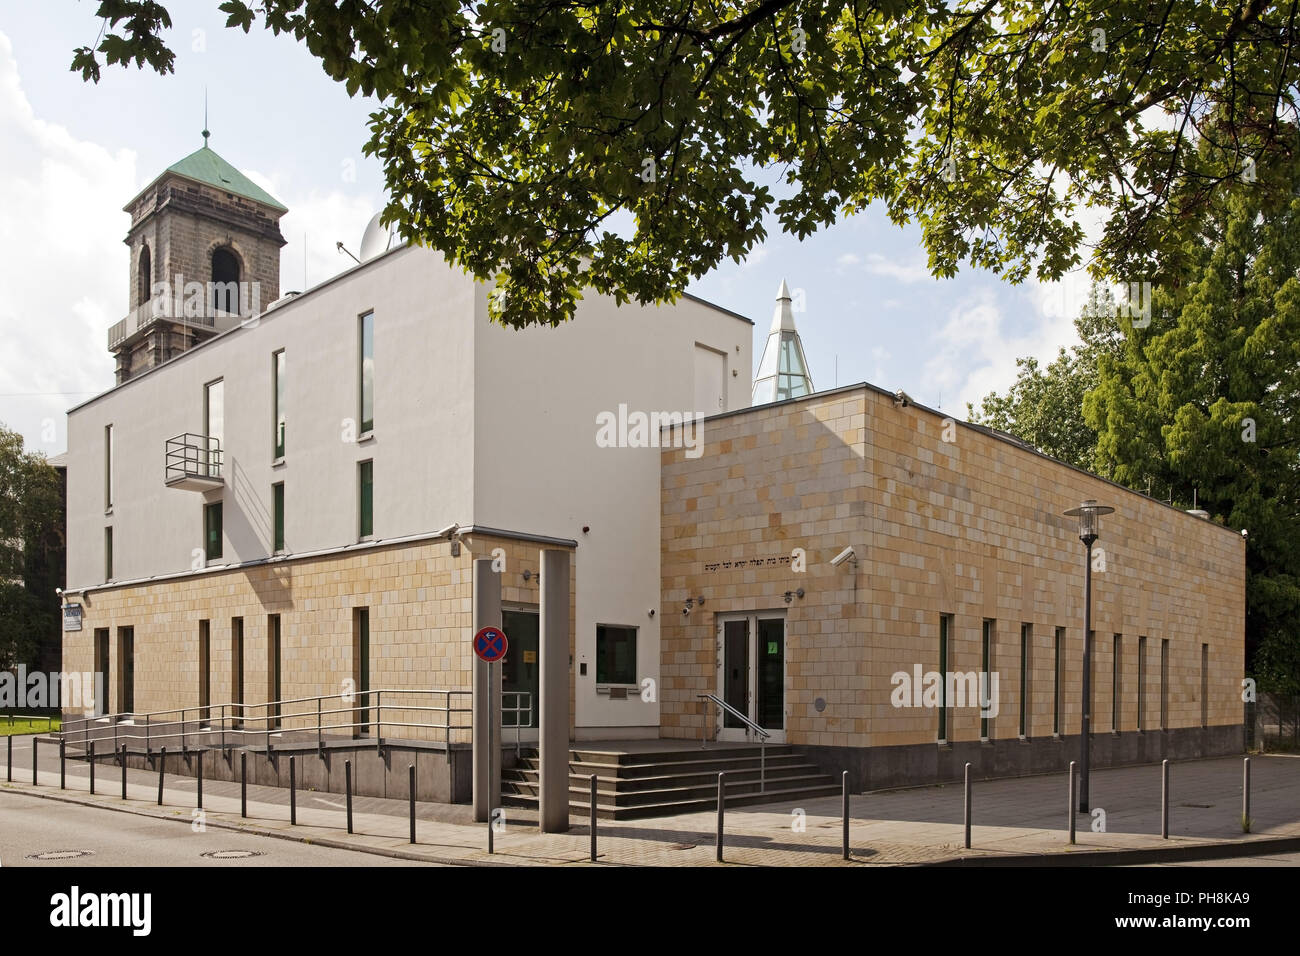 Bergische synagogue, Wuppertal - Stock Image